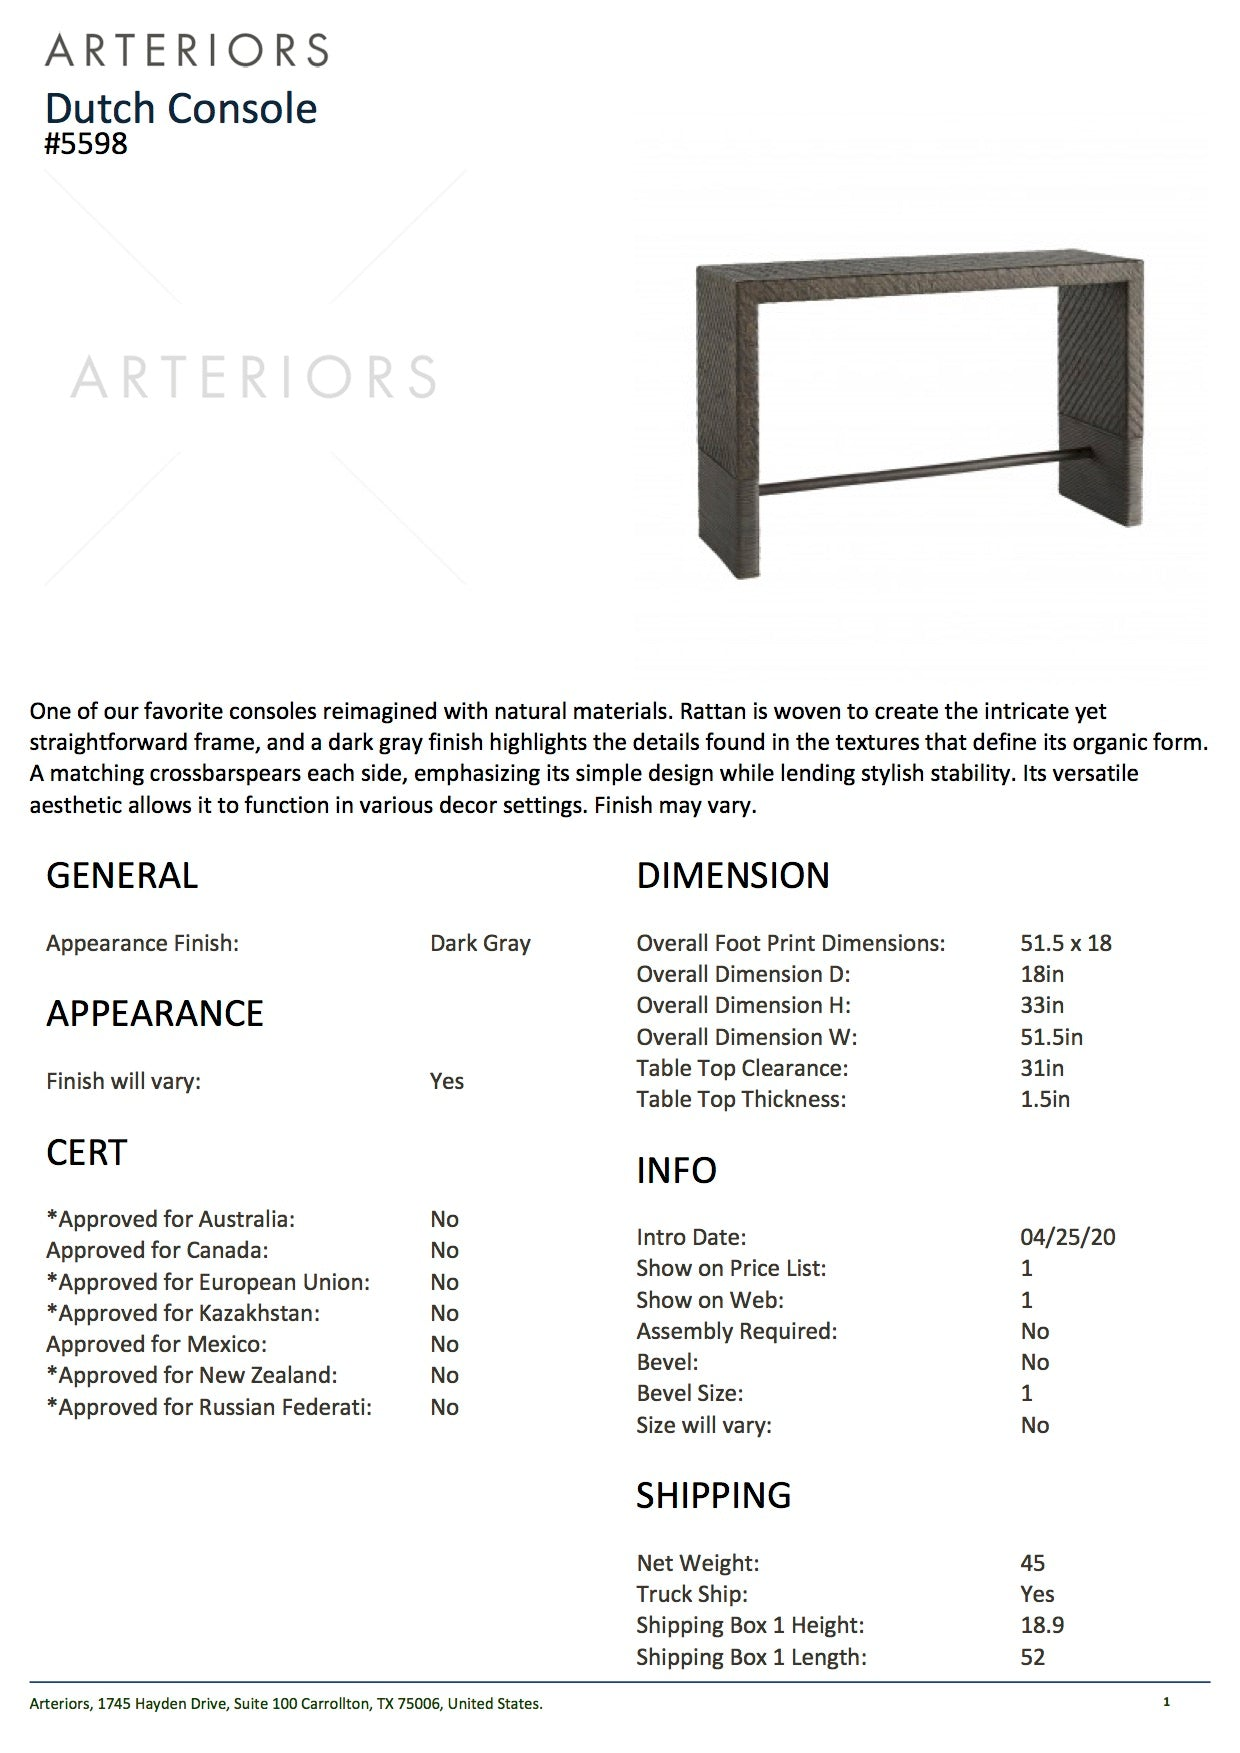 arteriors dutch console tearsheet